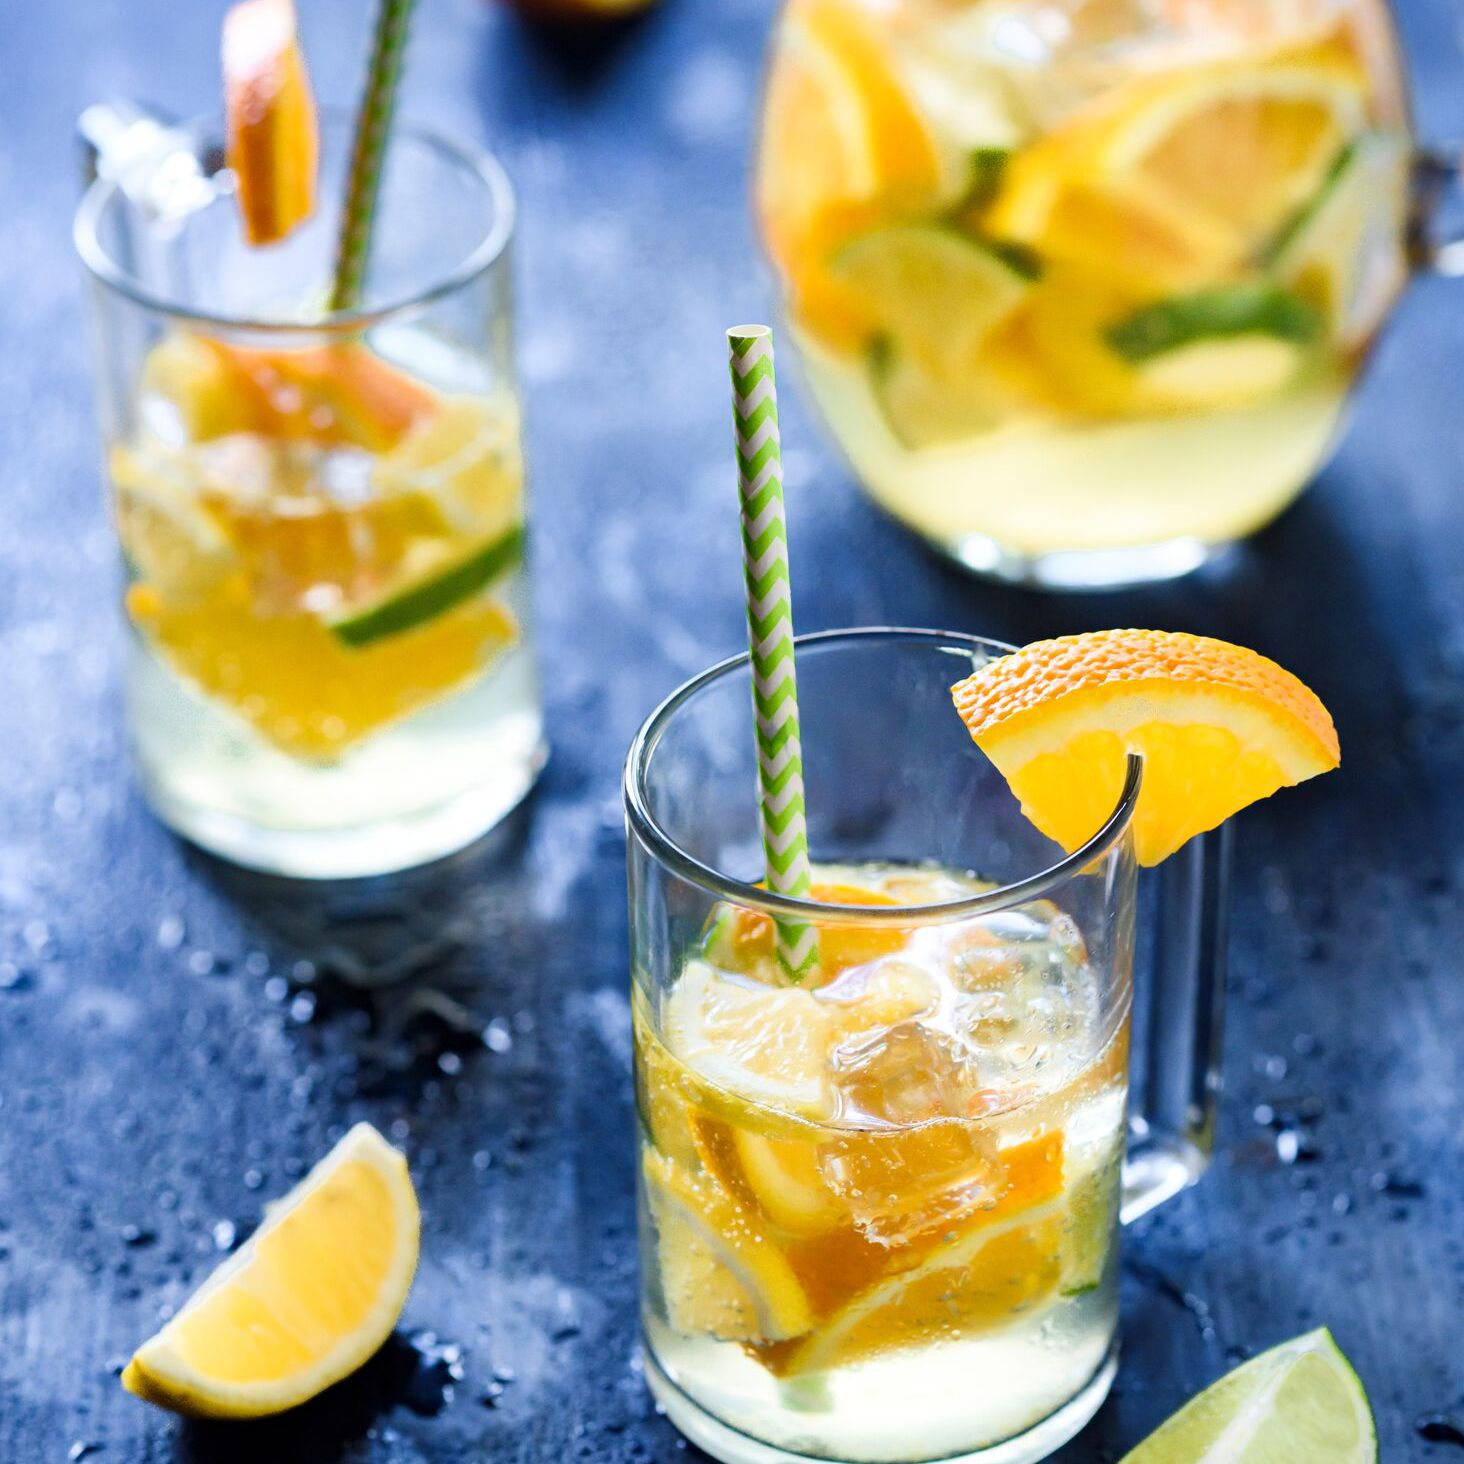 Simple And Tasty White Wine Sangria Recipe,Chicken Drumstick Recipes